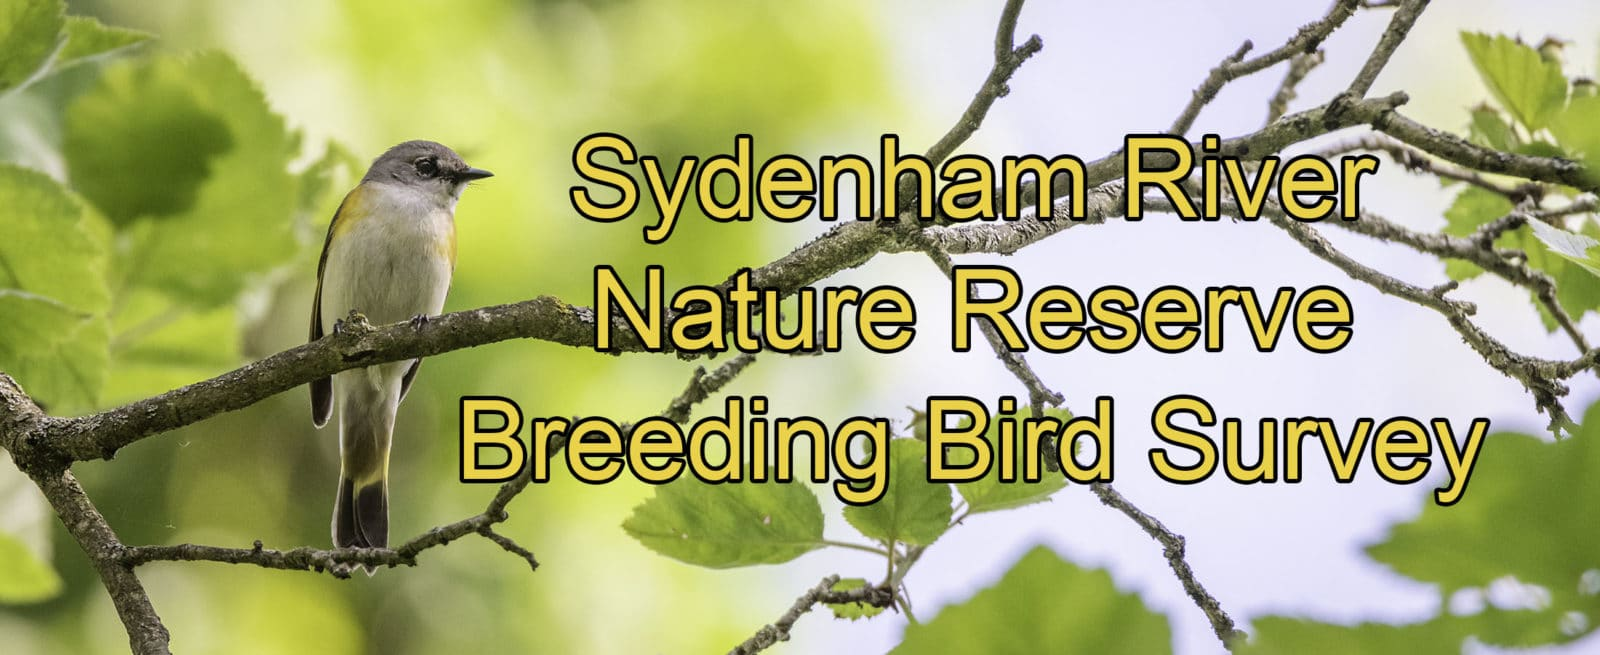 Sydenham River Nature Reserve Breeding Bird Survey